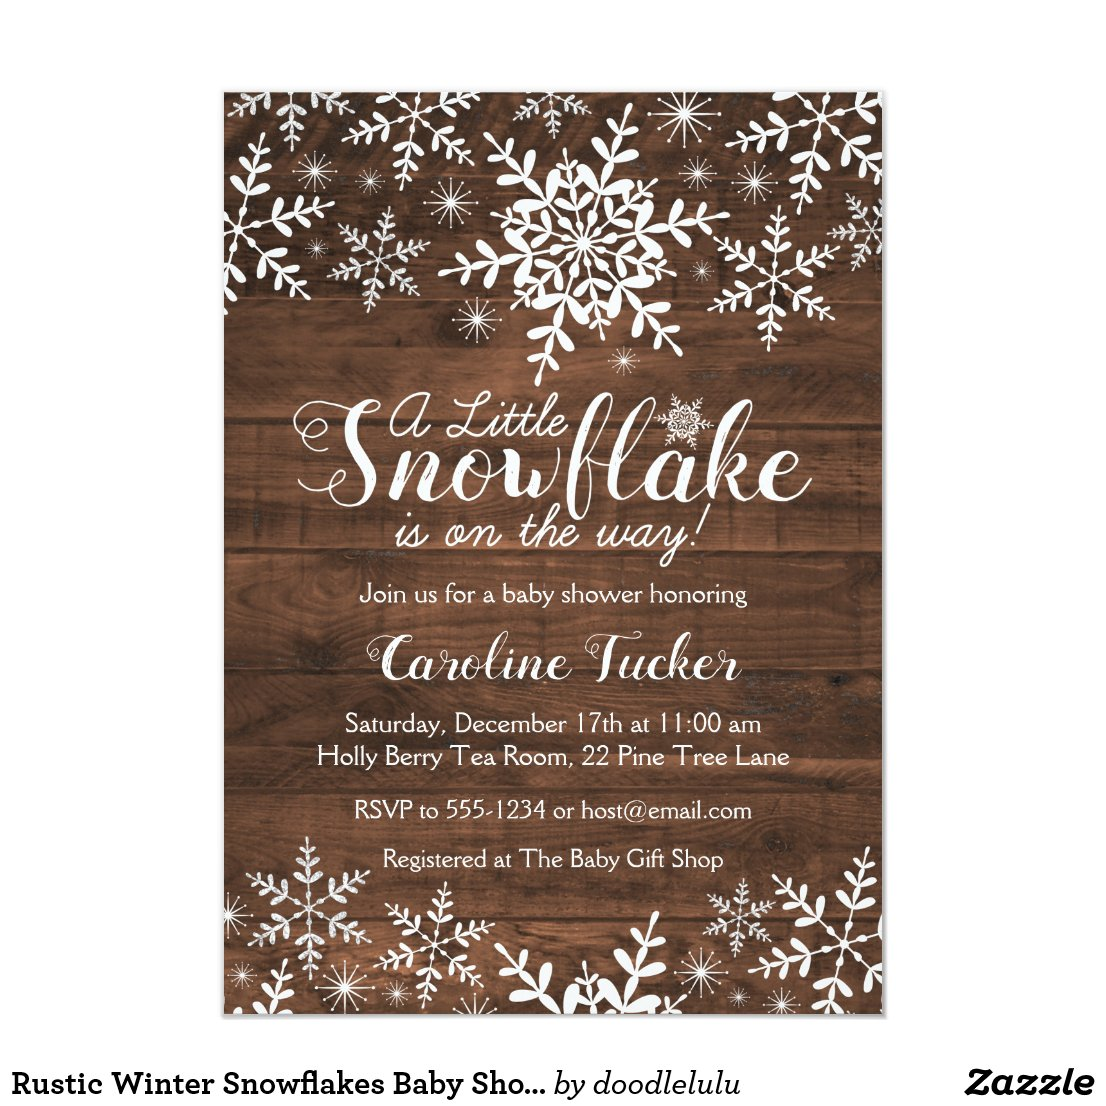 Rustic Winter Snowflakes Baby Shower Invitation